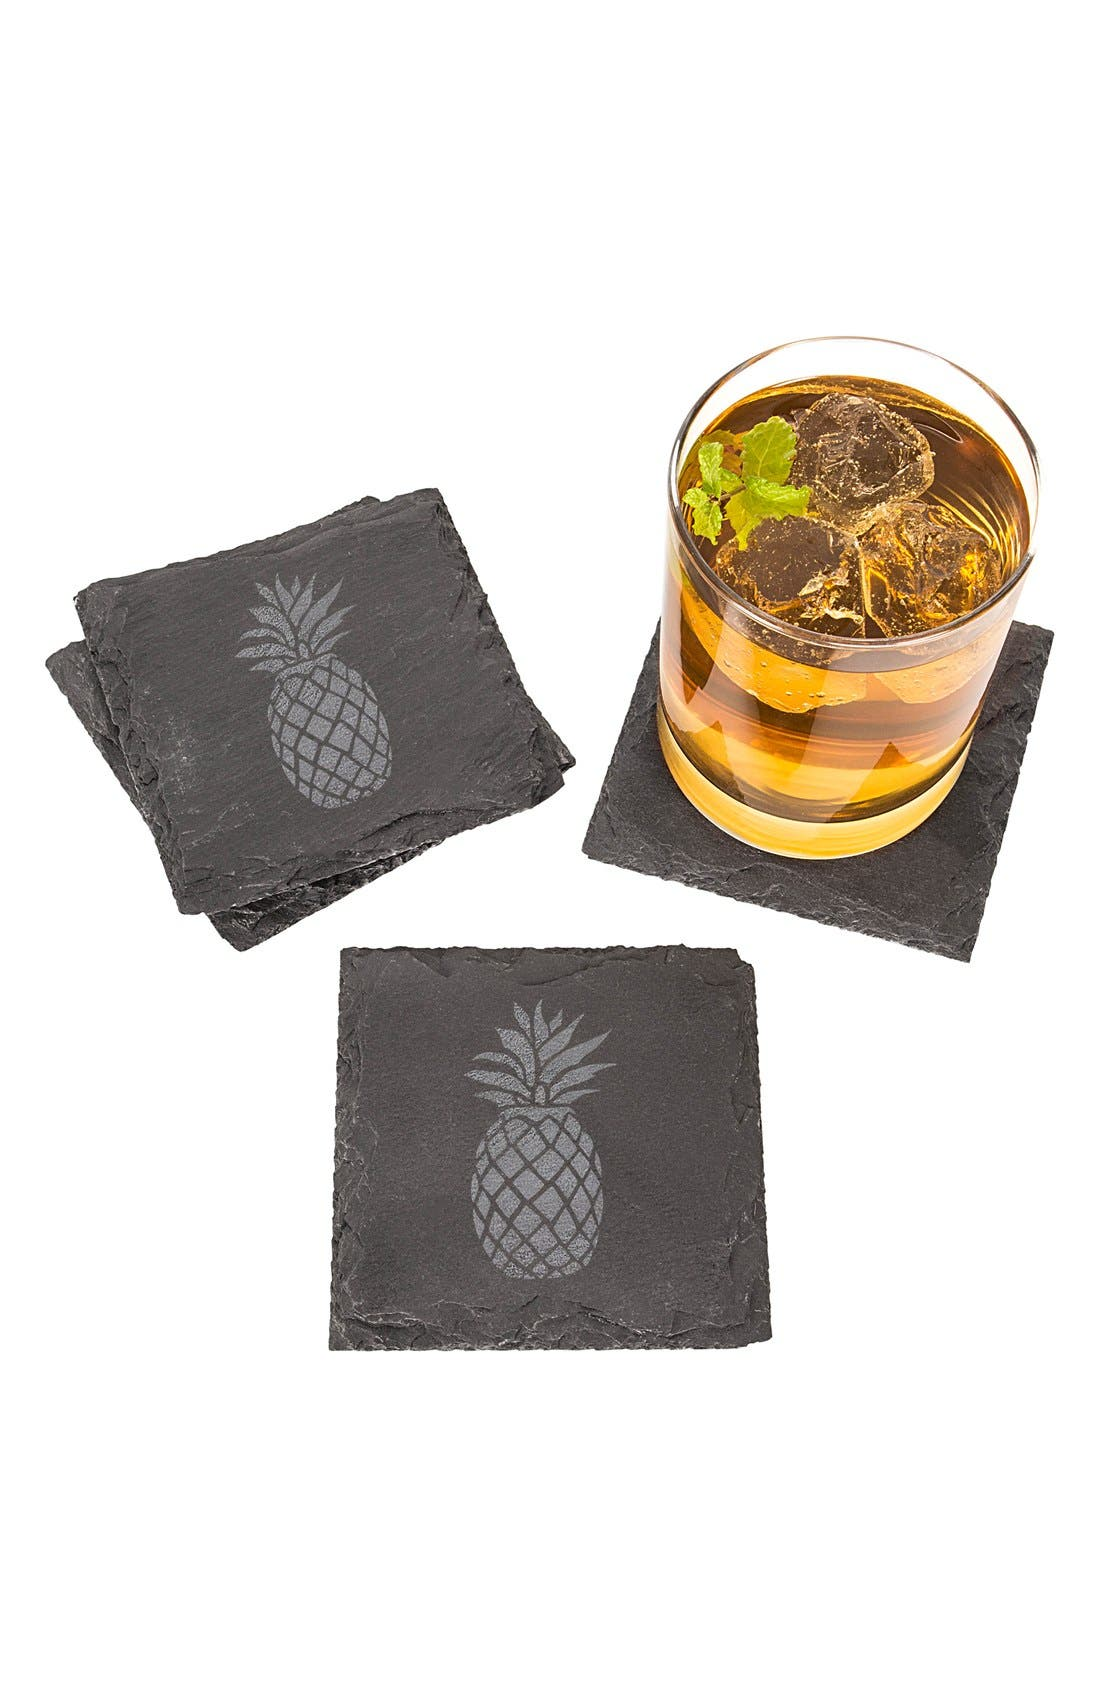 Main Image - Cathy's Concepts Set of 4 Pineapple Coasters